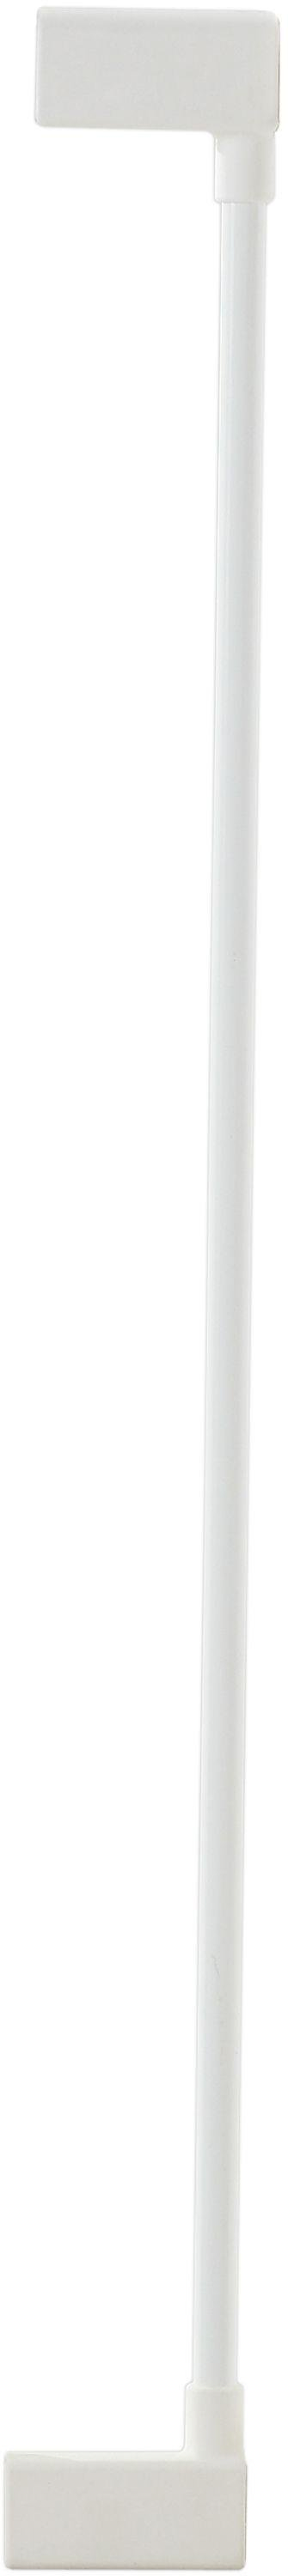 Lindam Universal 14cm Safety Gate Extension - White